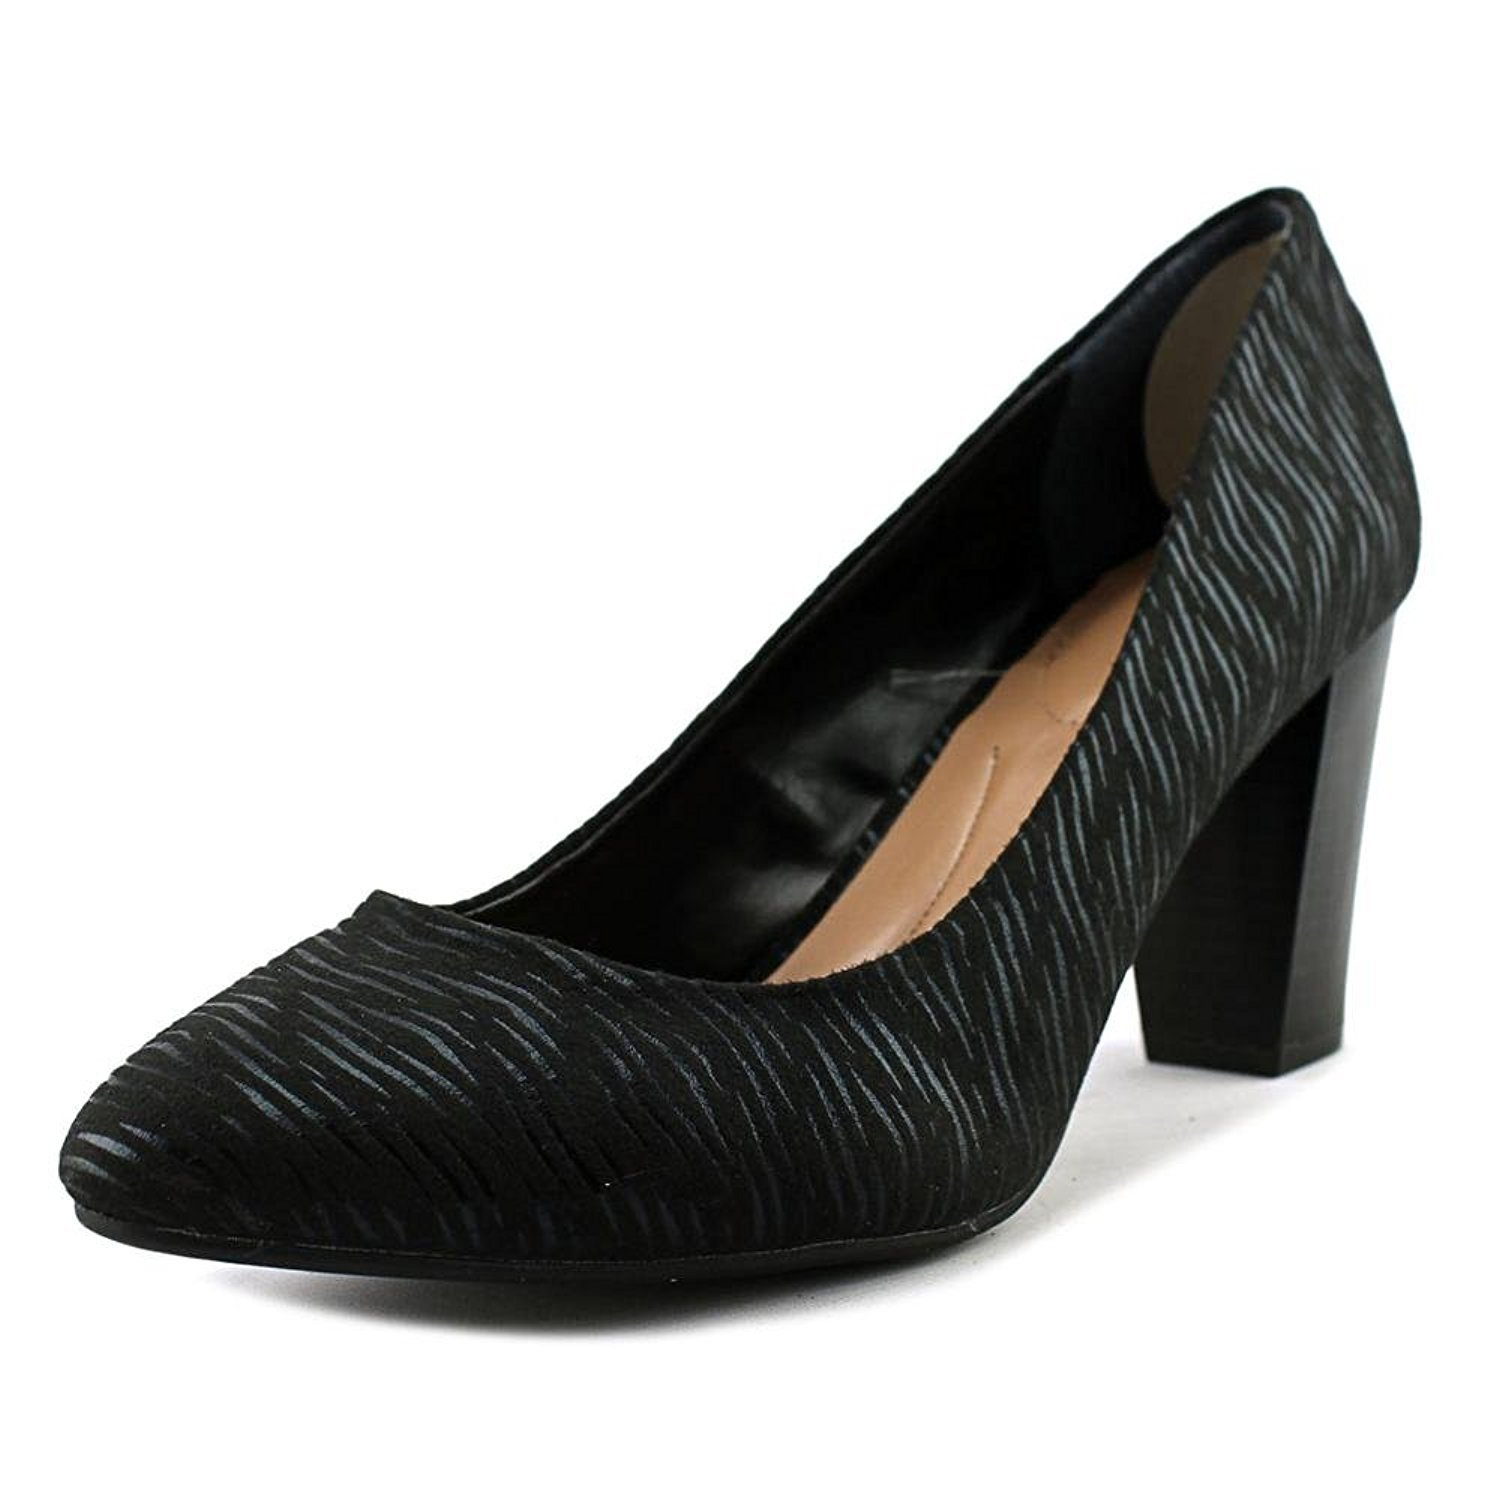 Style & Co. Asyaa Women Pointed Toe Canvas Gold Heels, Black, Size 5.5